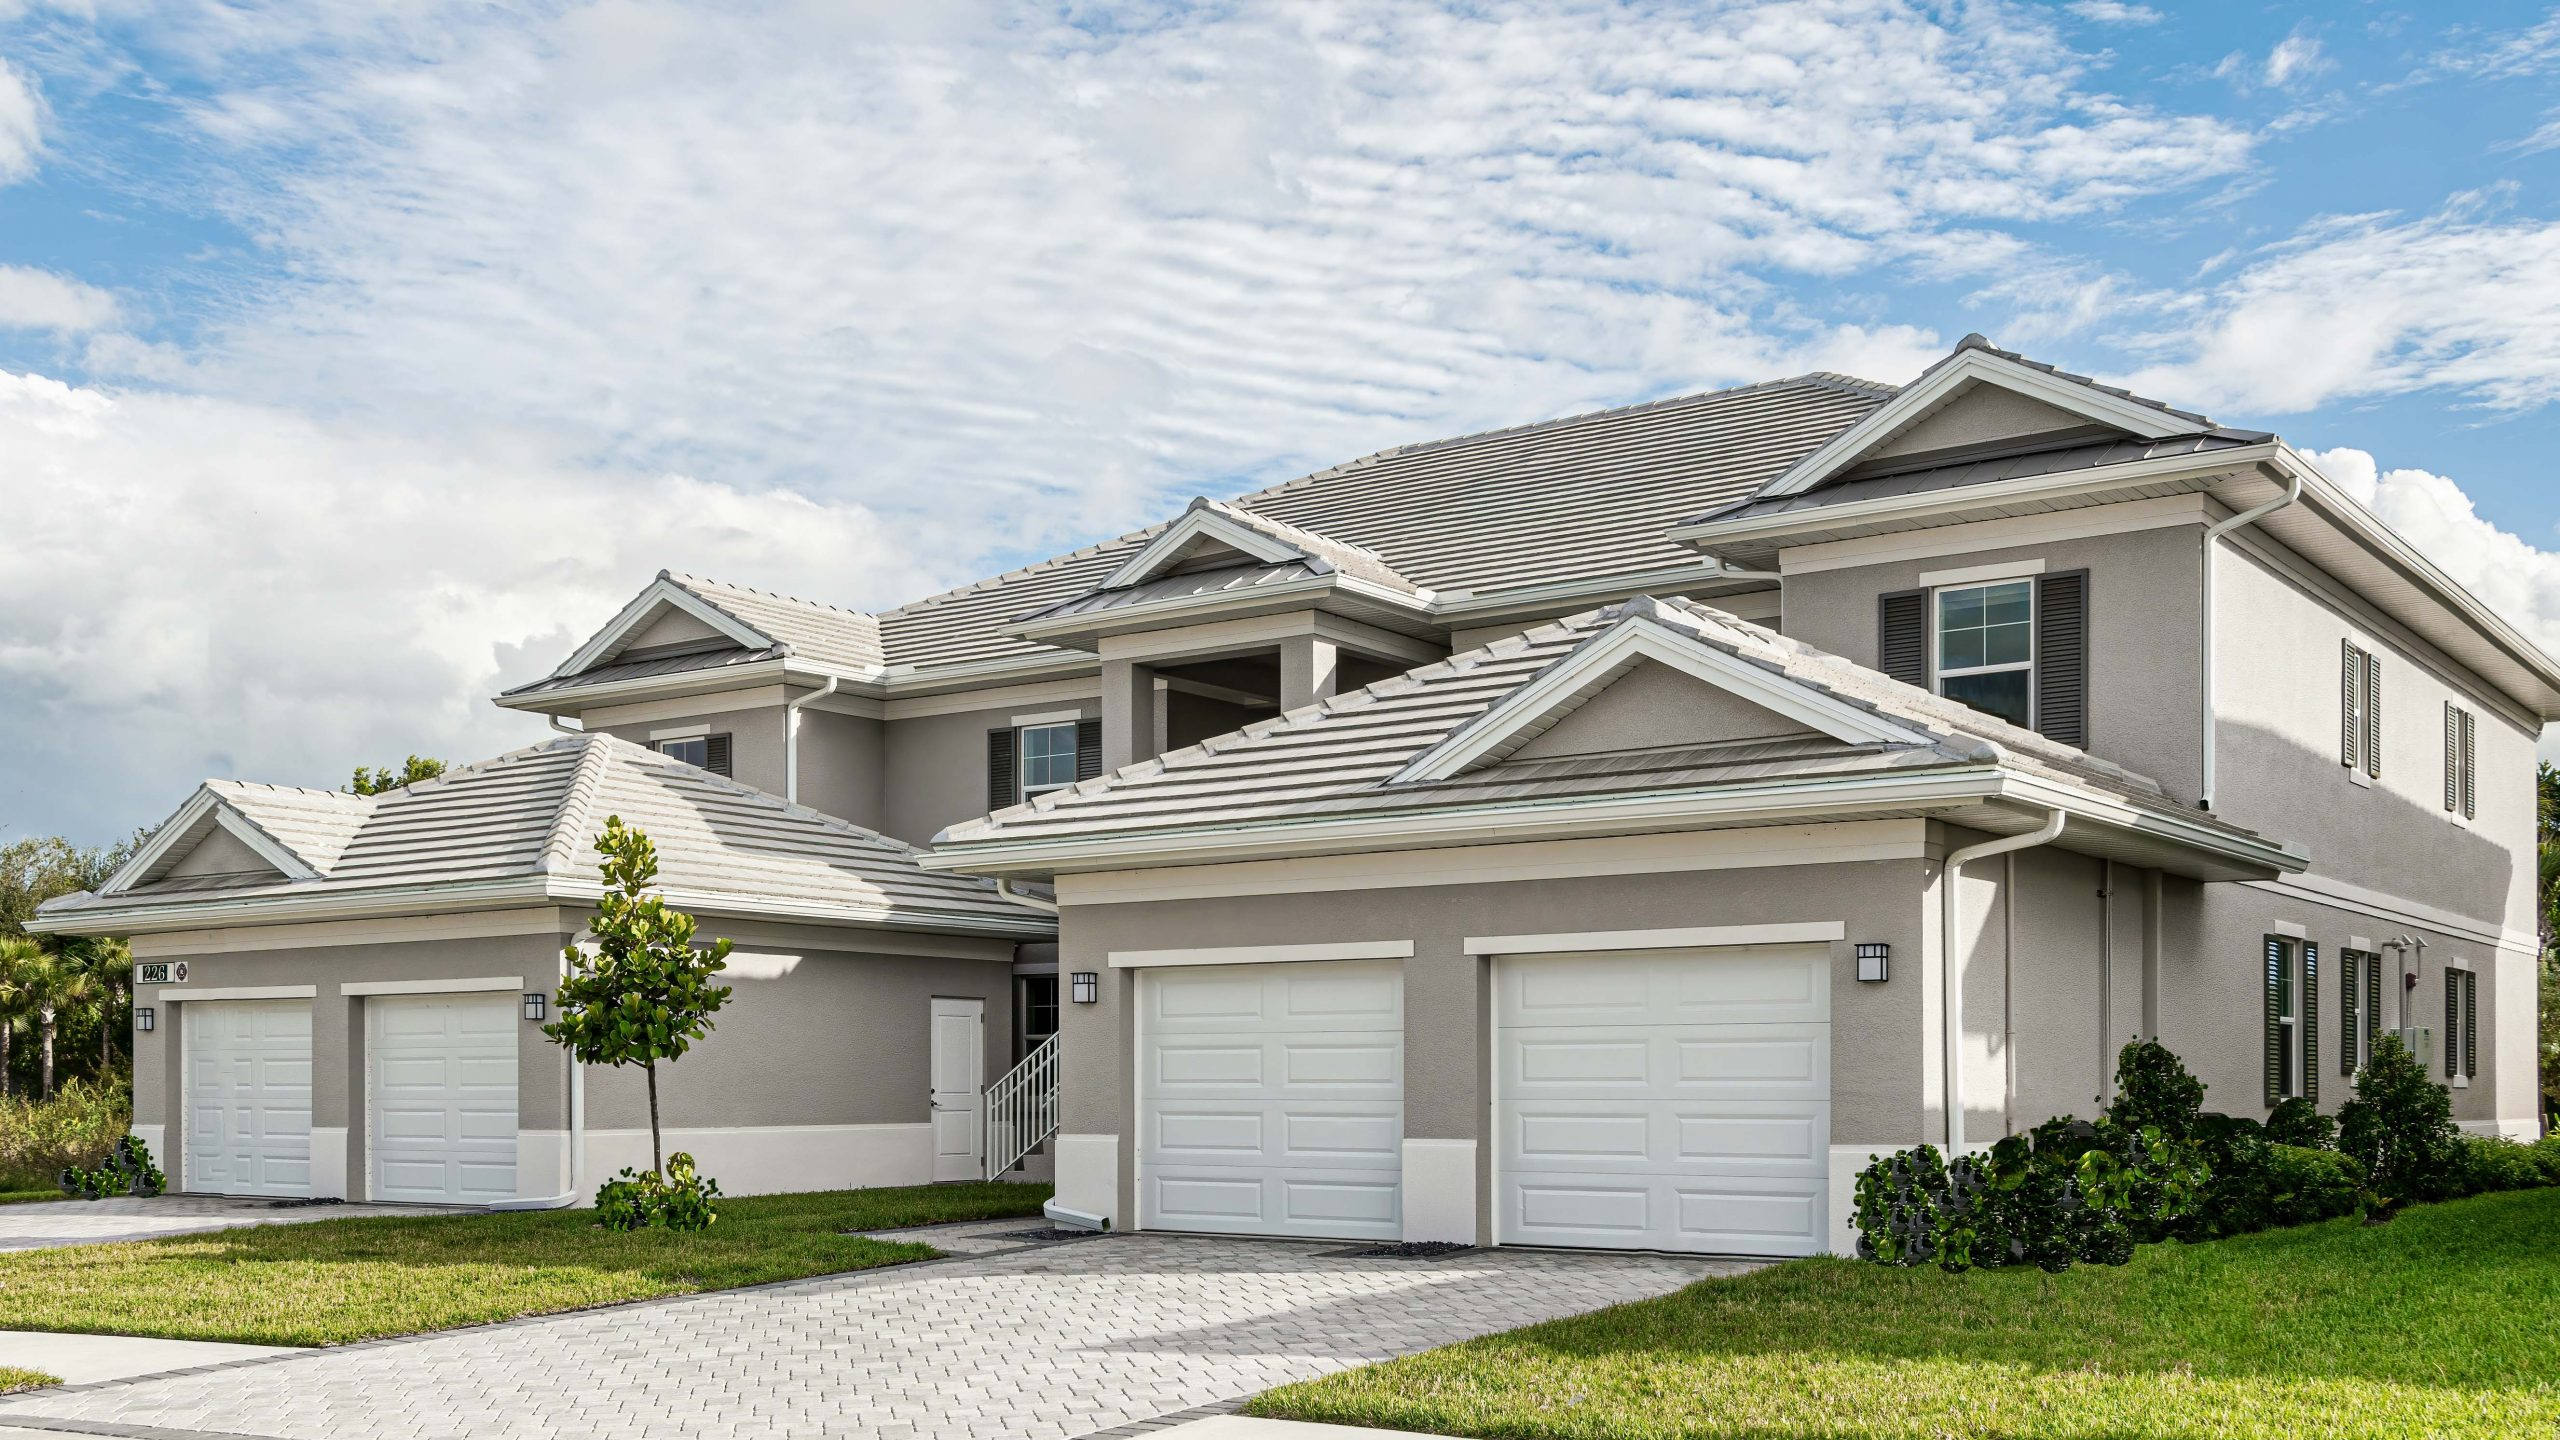 Classic Coach Homes Angled | Antilles of Naples, Florida - West Indies Styled Residential Resort